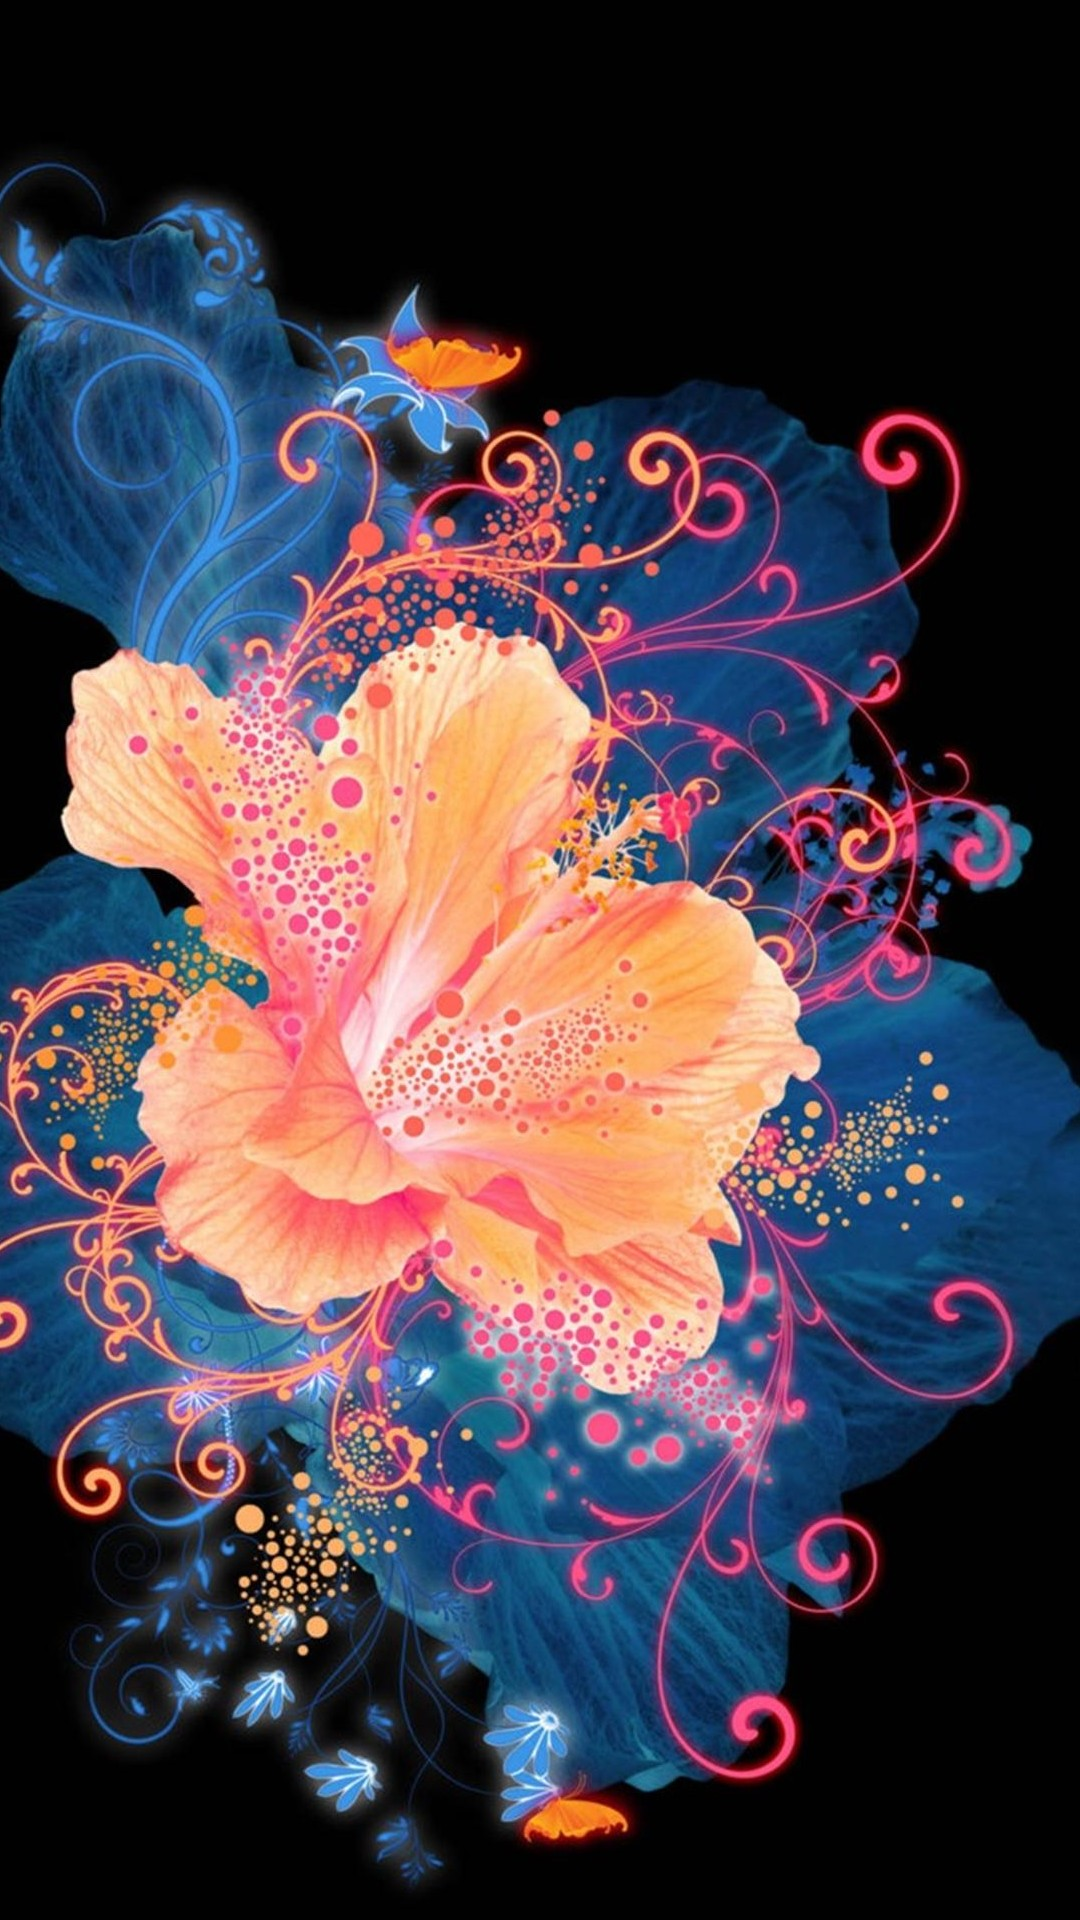 Colorful-Samsung-Galaxy-Note-wallpaper-wp5804671